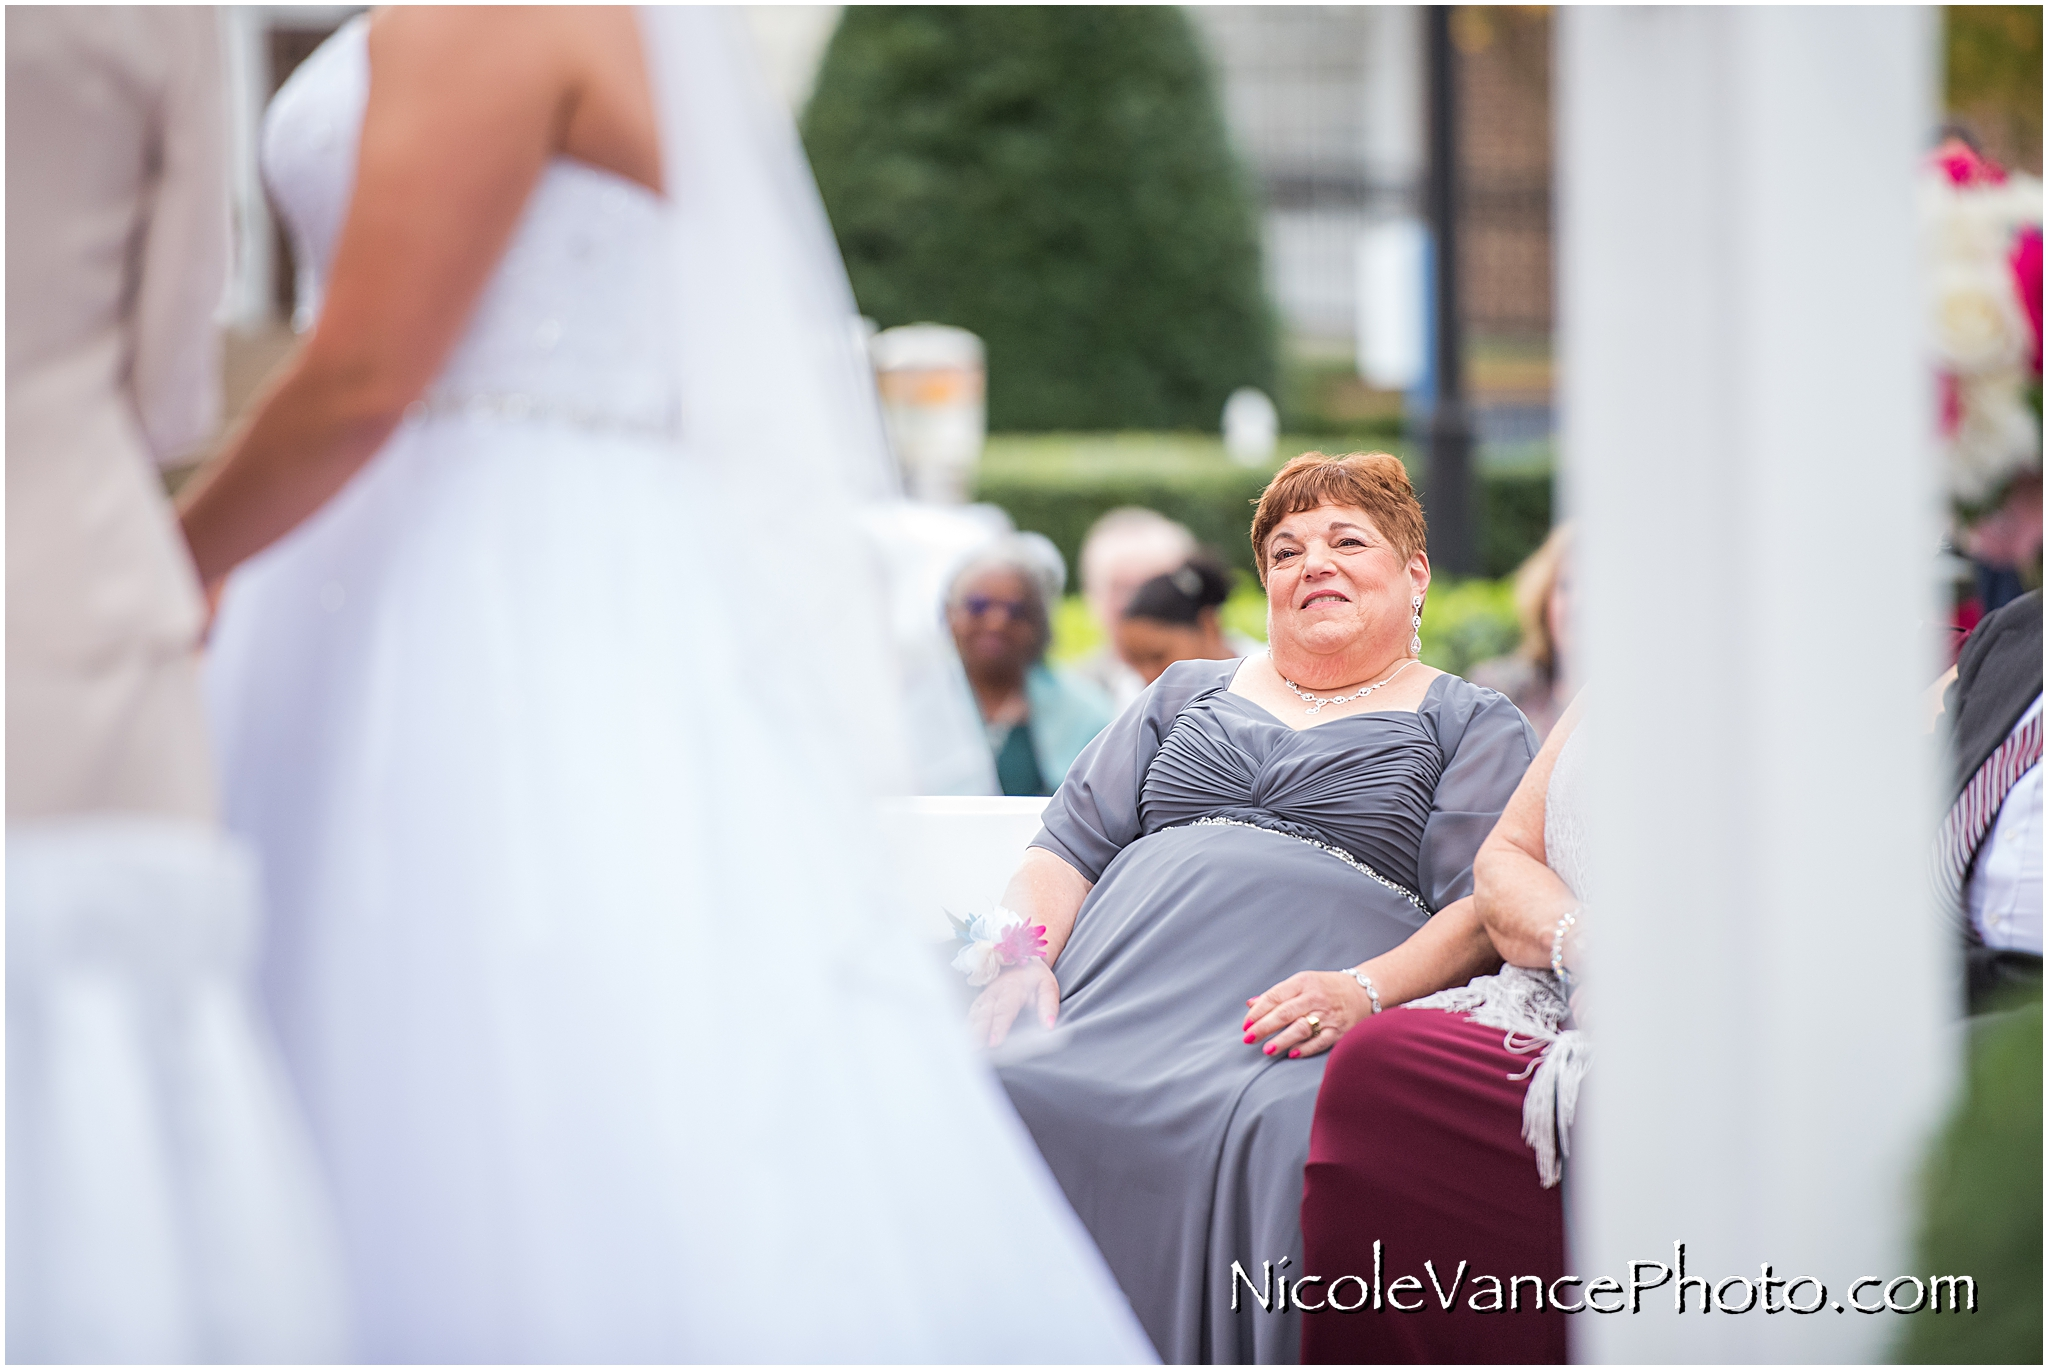 The bride's mother during the wedding ceremony at Virginia Crossings.